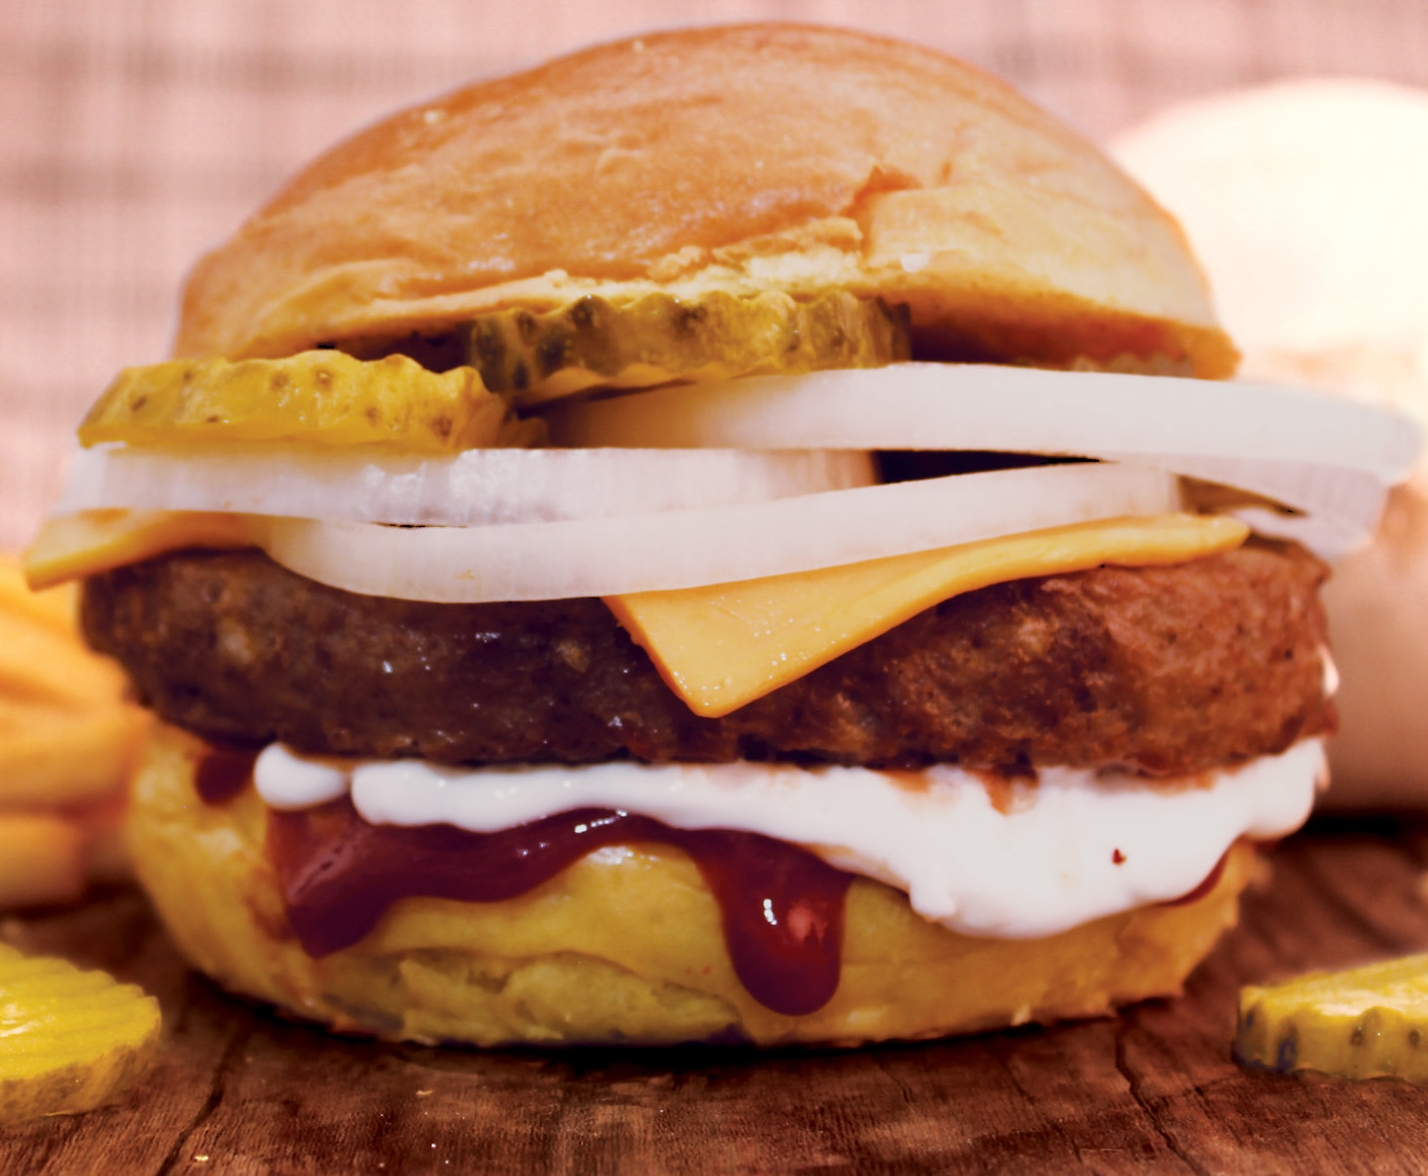 OLD SCHOOL BURGER                      39    Prime ANGUS beef patty, melted cheddar cheese, mayo, ketchup, white onion &pickle